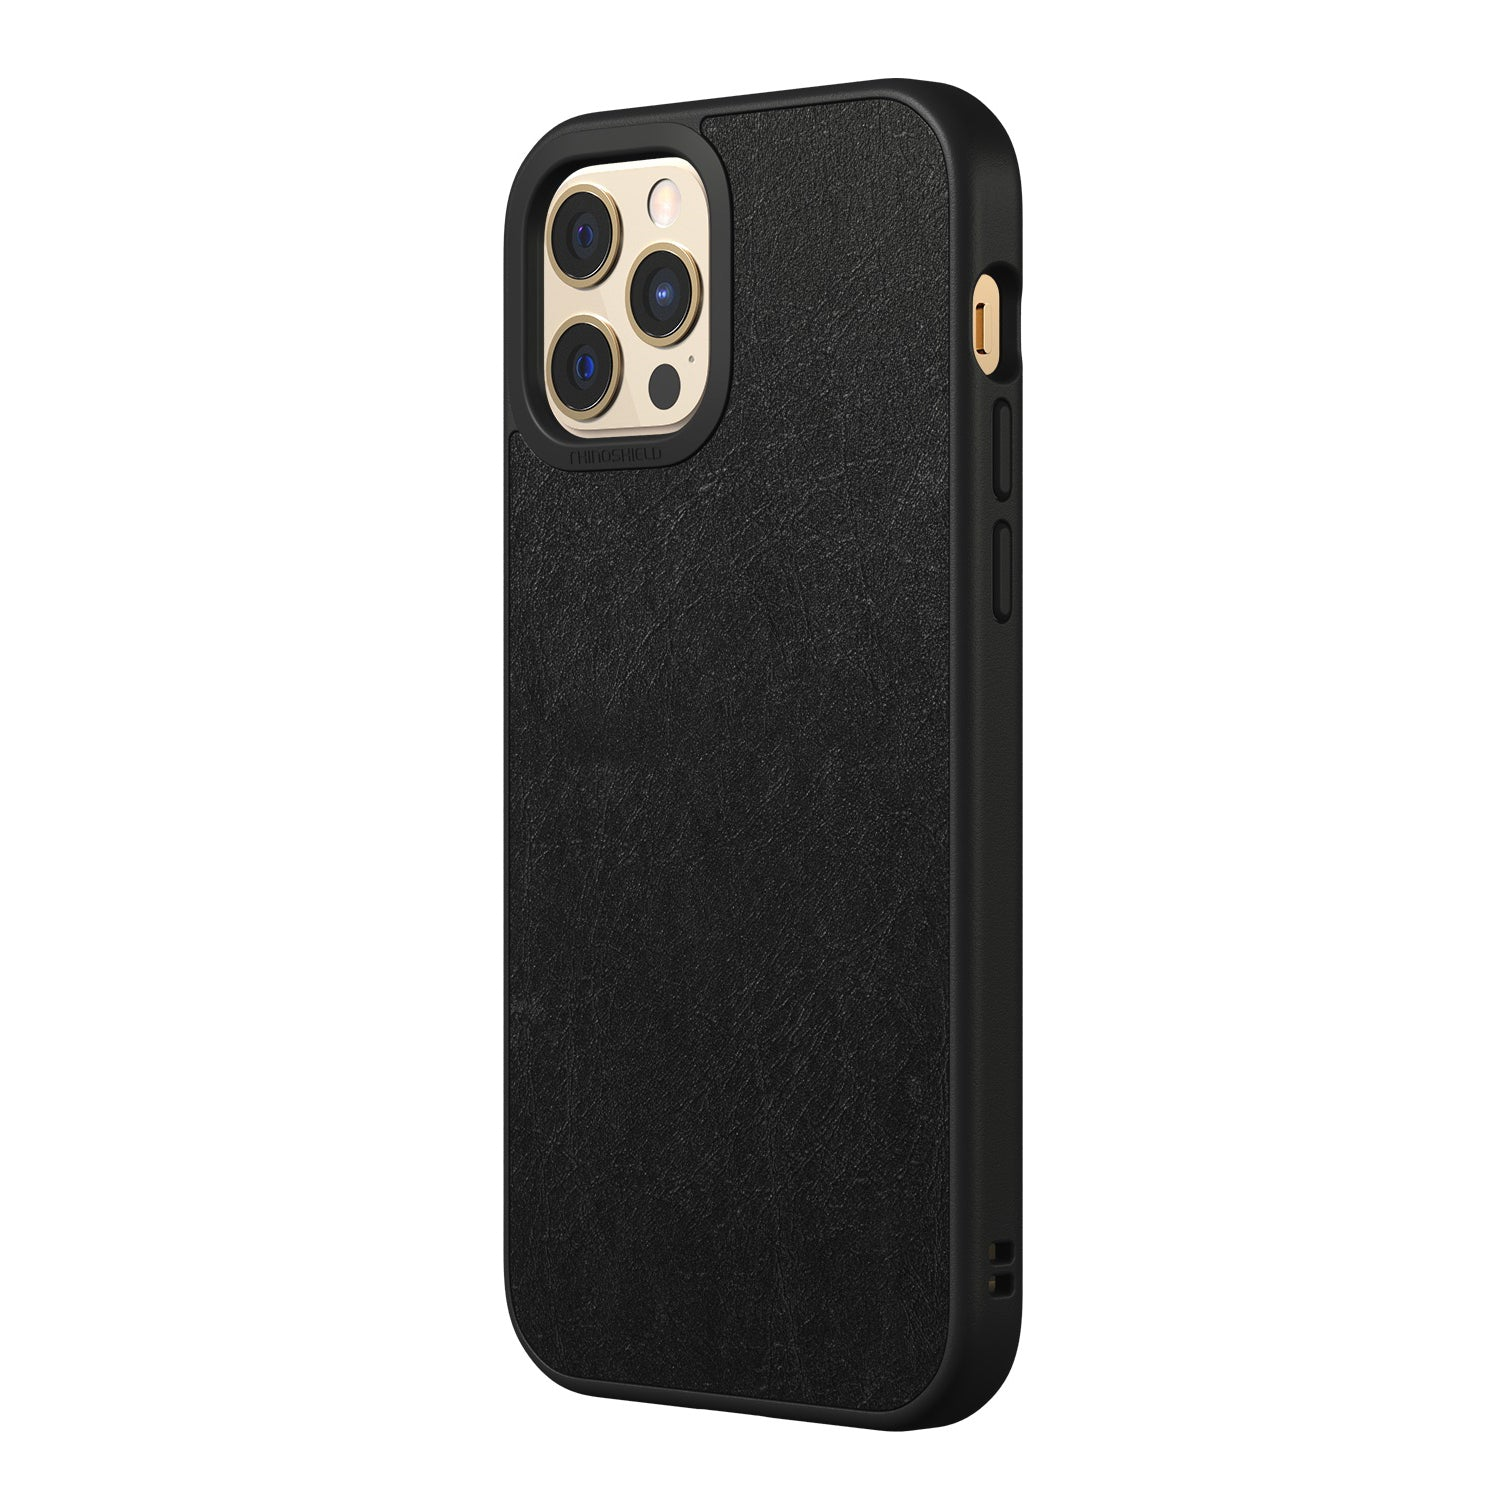 RhinoShield SolidSuit Rugged Case For iPhone 12 / 12 Pro  - Genuine Leather